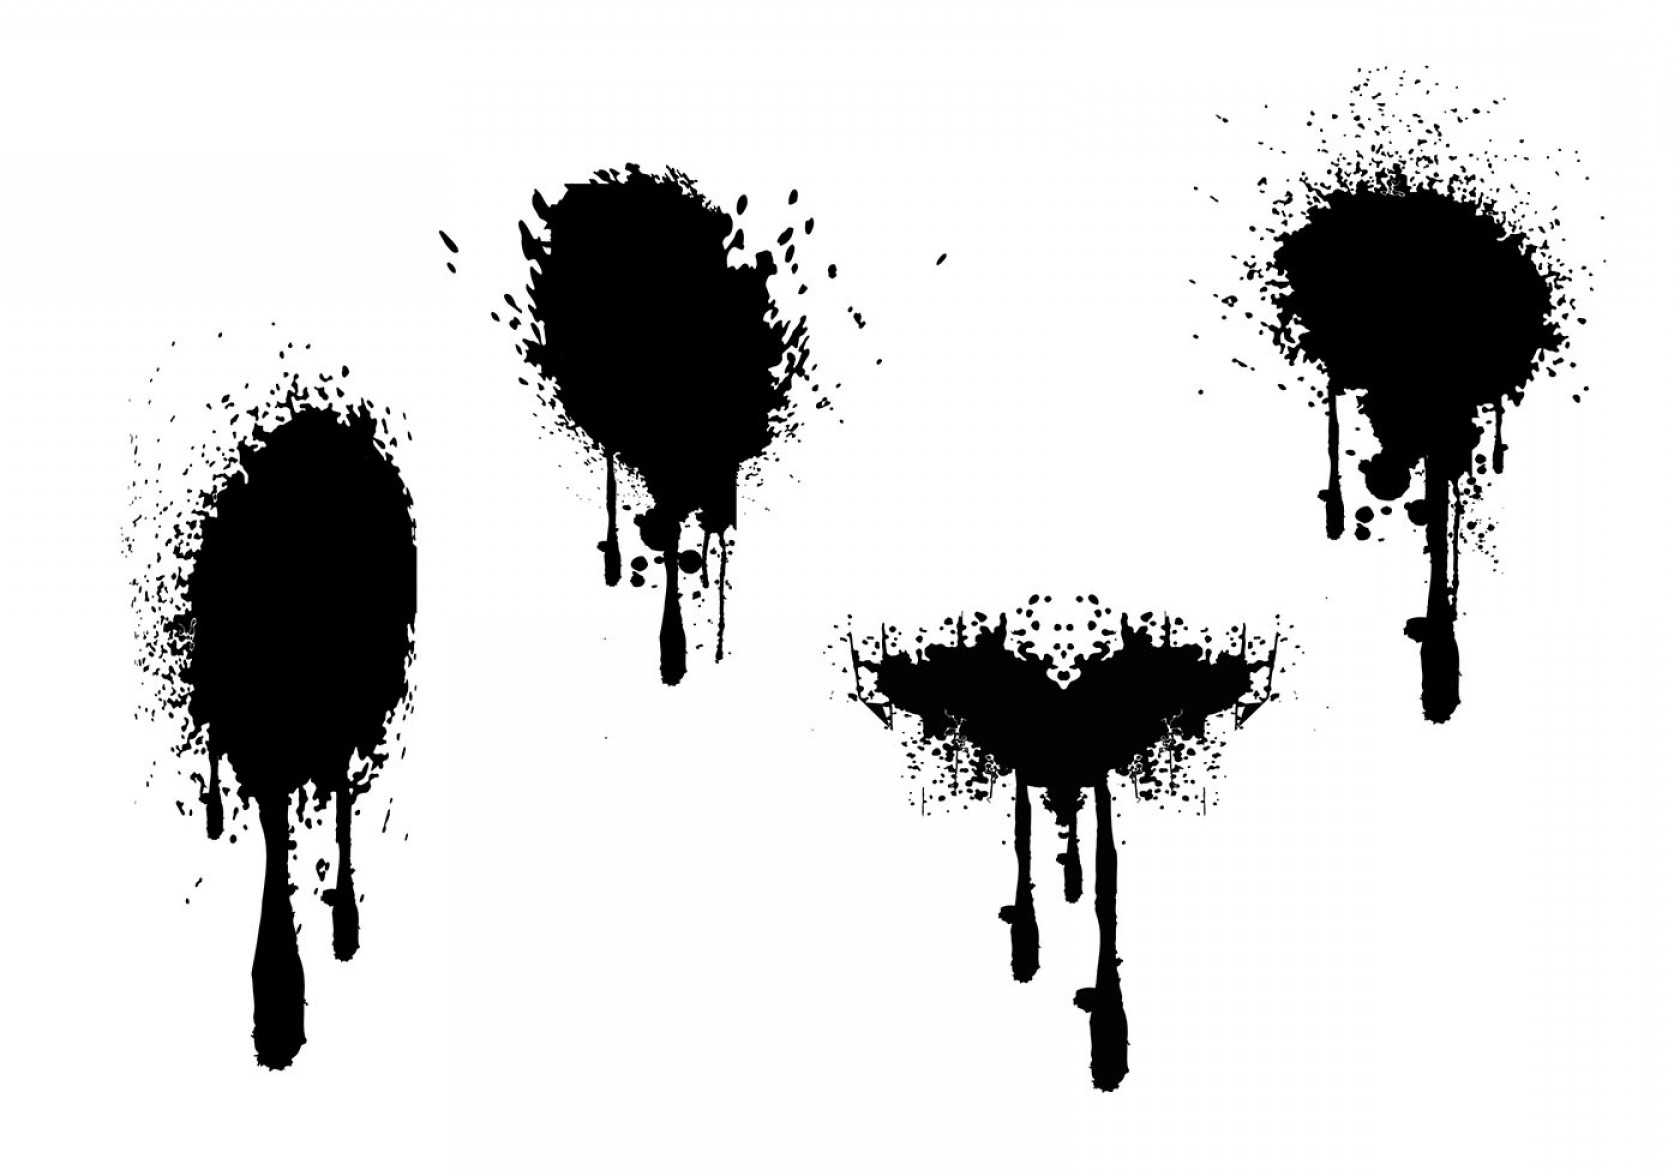 Dripping Paint Vector Illustration: Spray Paint Drips Grunge Vectors